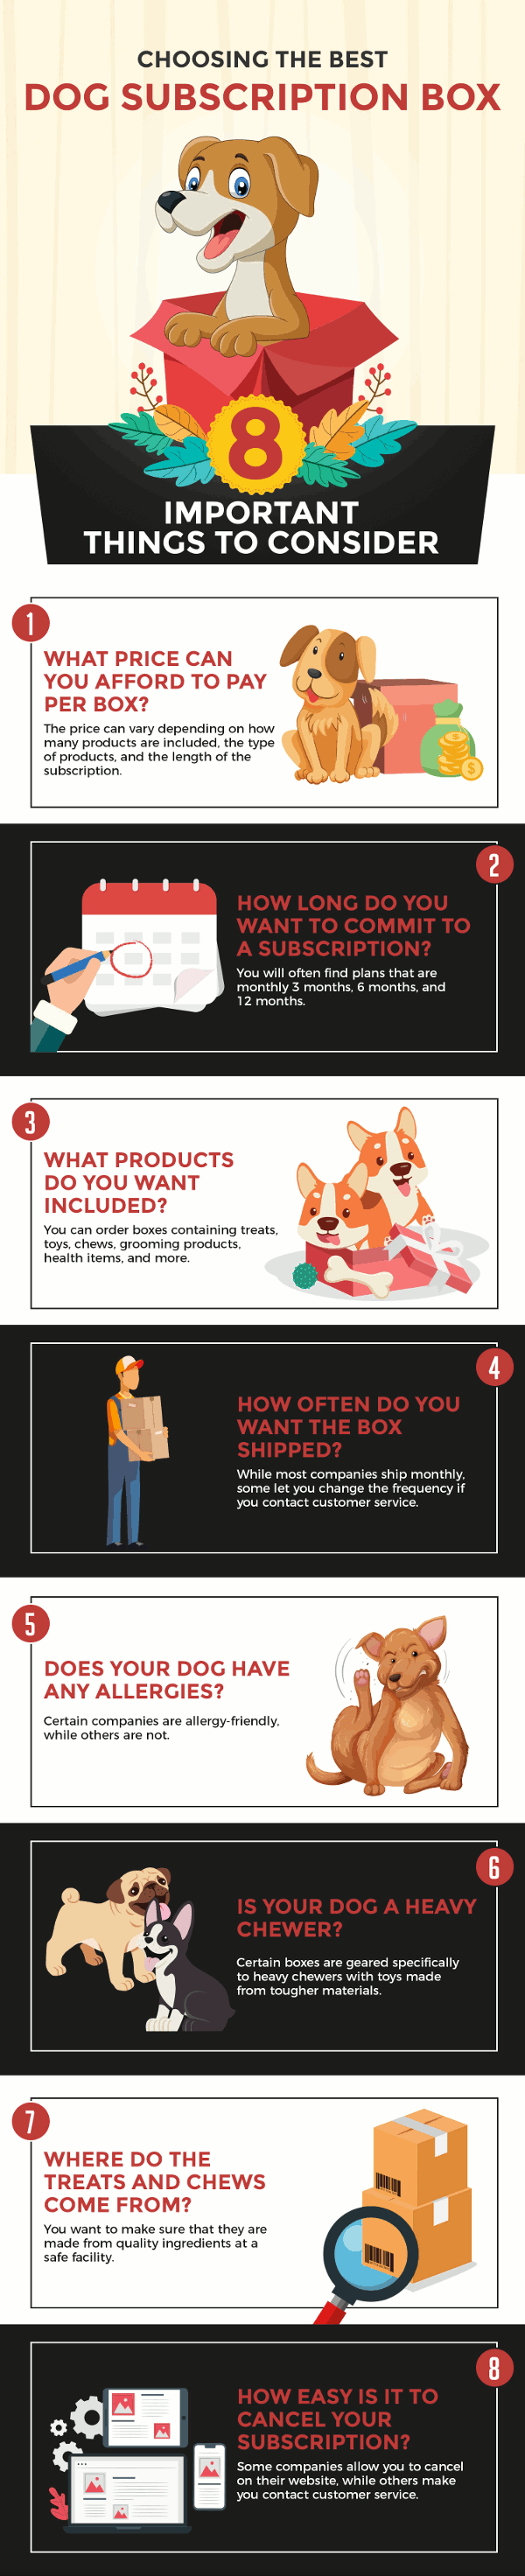 Infographic on choosing the best dog subscription box with 8 important things to consider